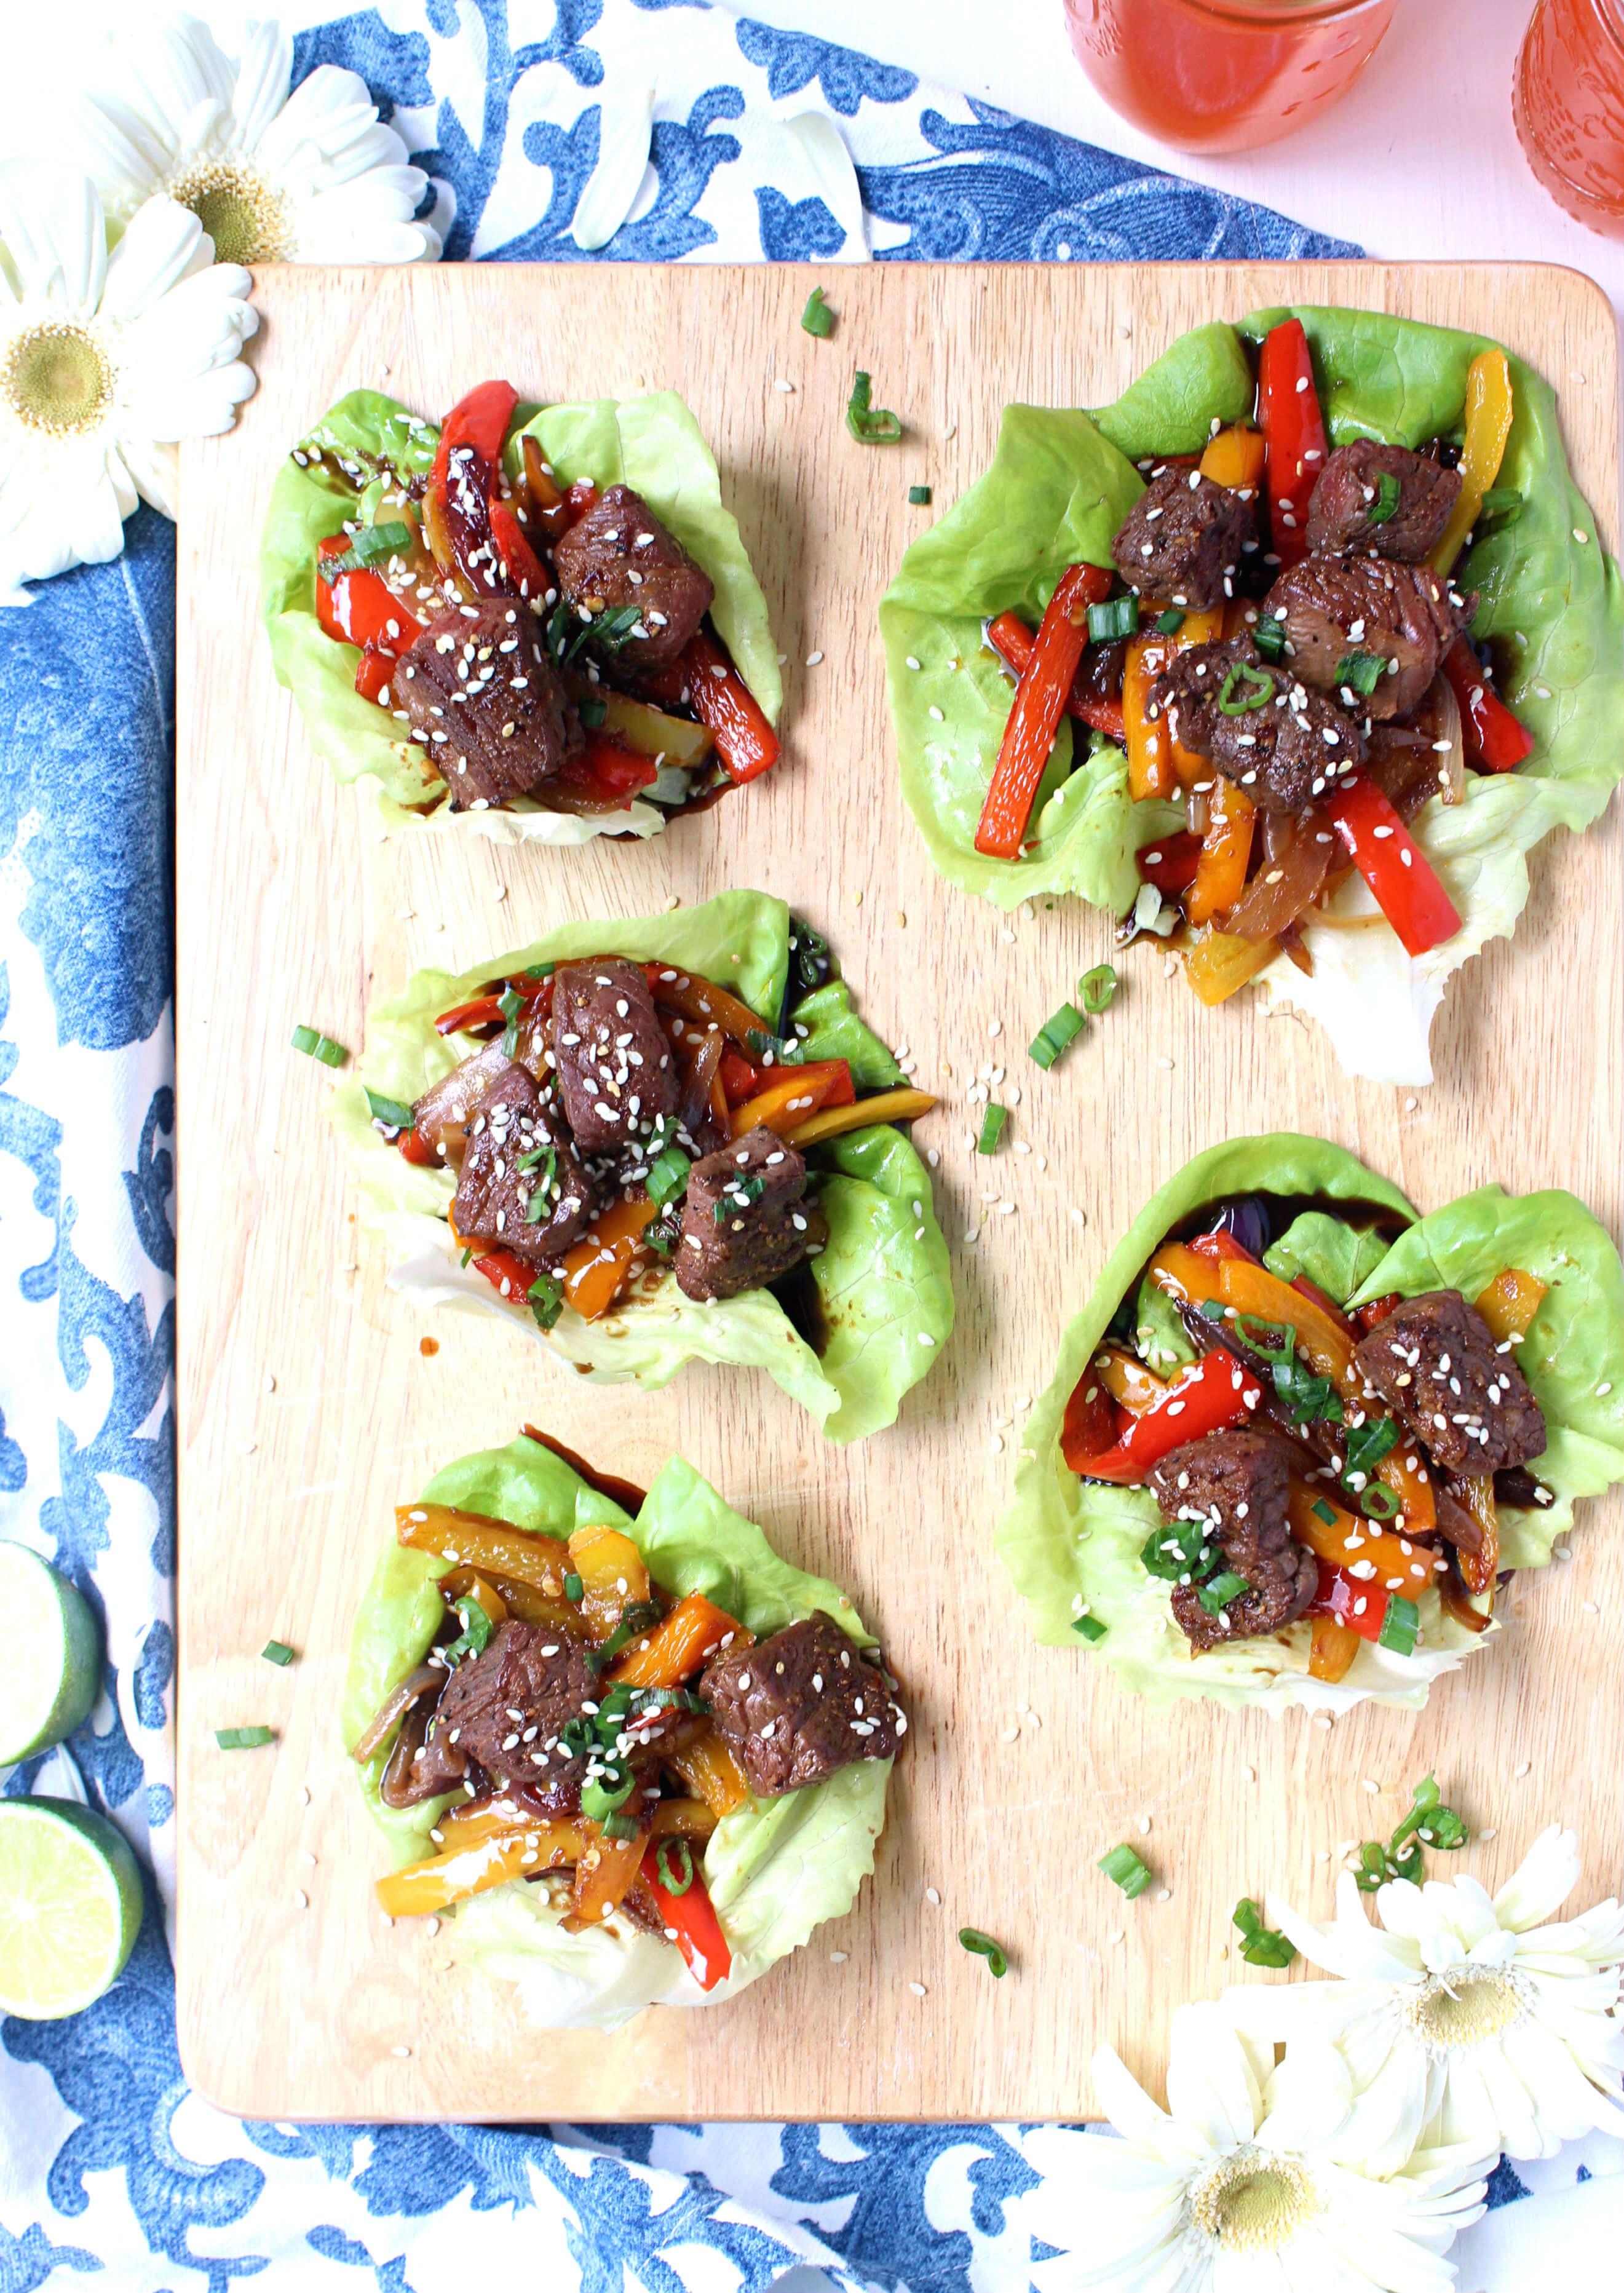 Dinner for two 20 minute korean beef lettuce wraps w rainbow dinner for two 20 minute korean beef lettuce wraps w rainbow veggie slaw wry toast forumfinder Choice Image